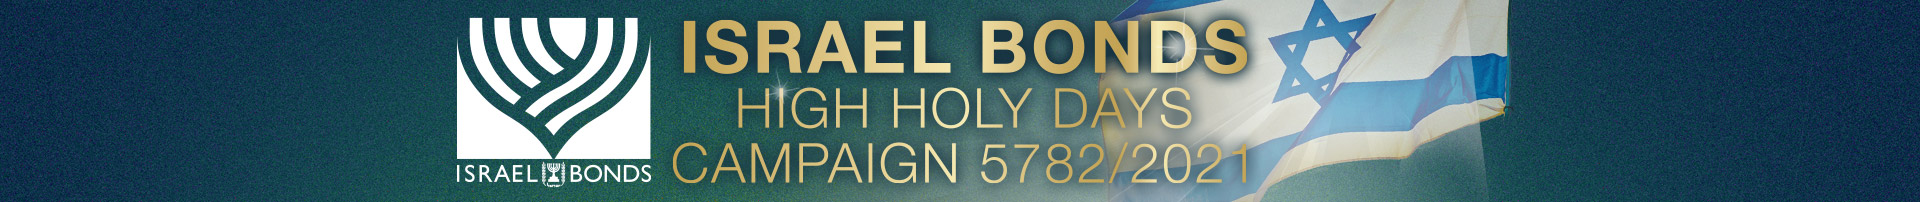 Israel Bonds High Holy Days Campaign 5782/2021